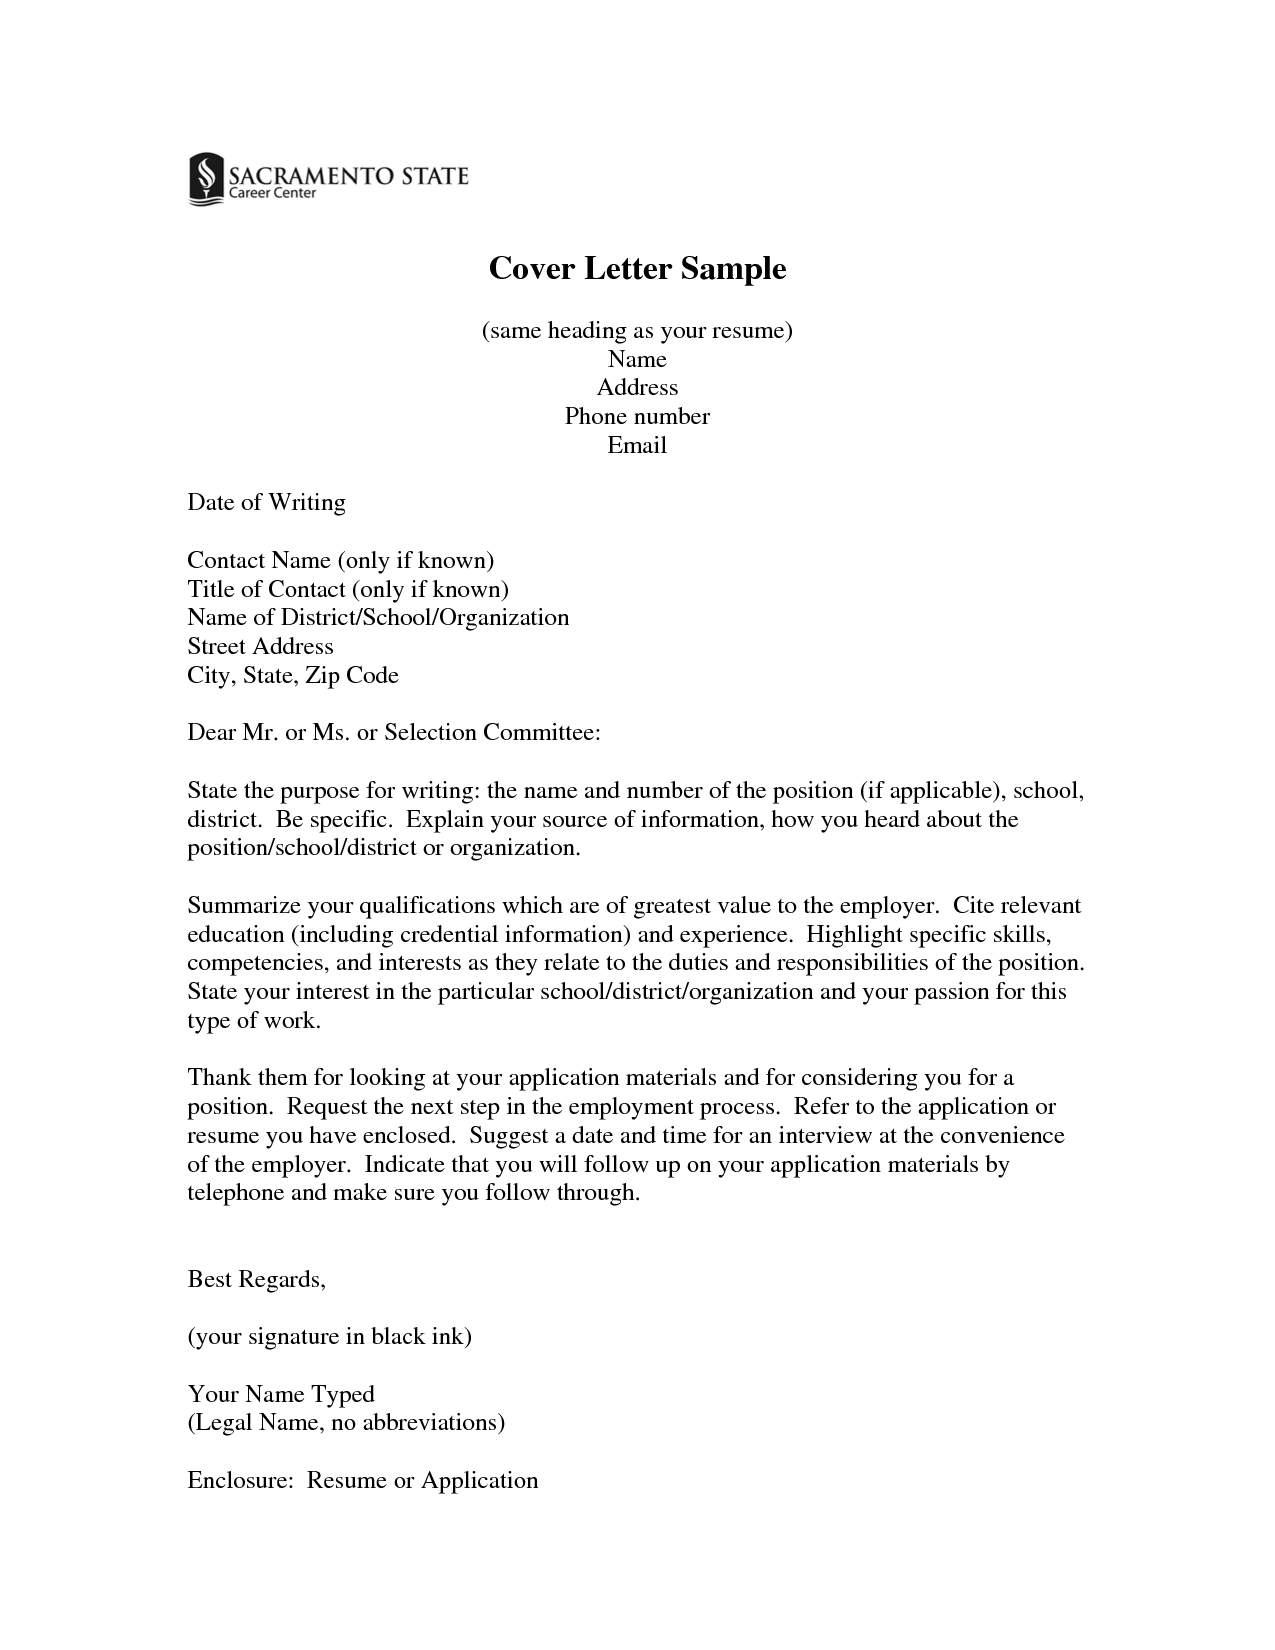 Same cover letters for resume cover letter sample same heading same cover letters for resume cover letter sample same heading as your resume name address madrichimfo Images